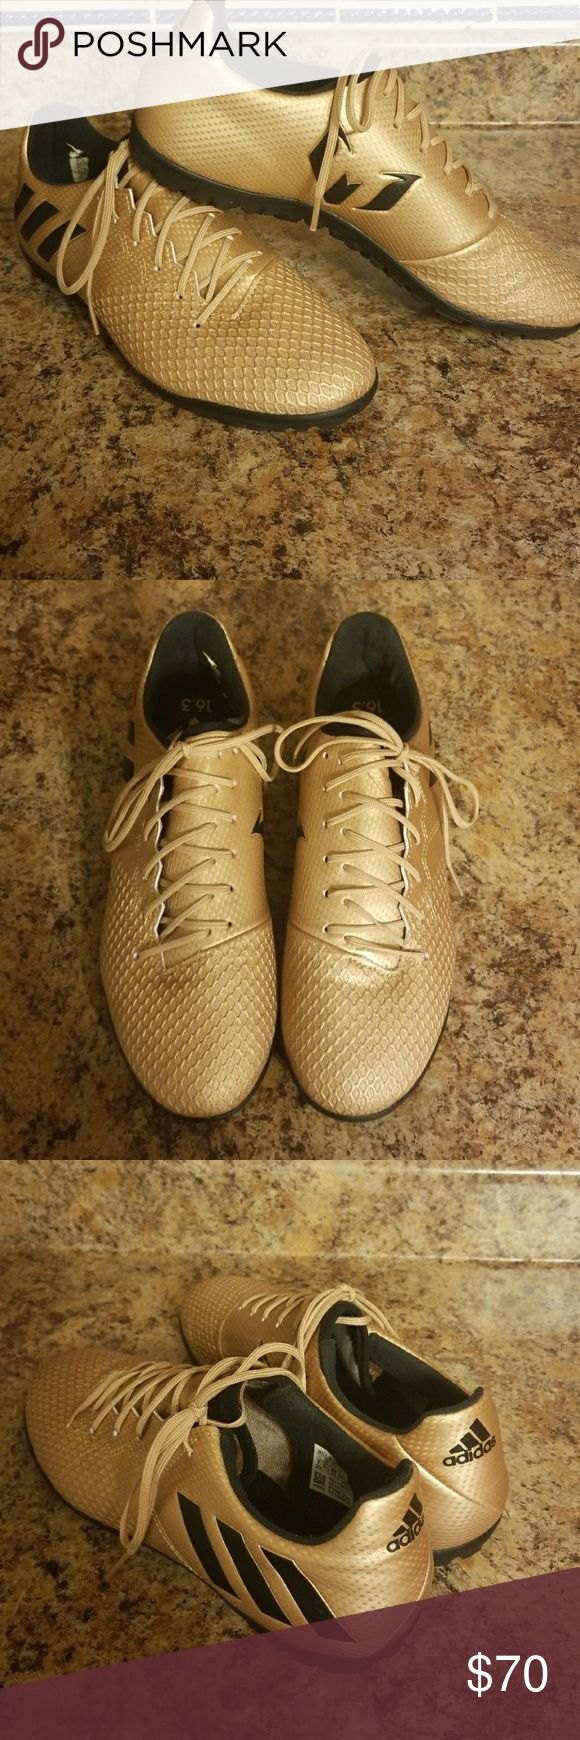 Adidas Messi 2017 16.3 Turf Indoor soccer shoes never worn. Size 7. adidas Shoes Athletic Shoes